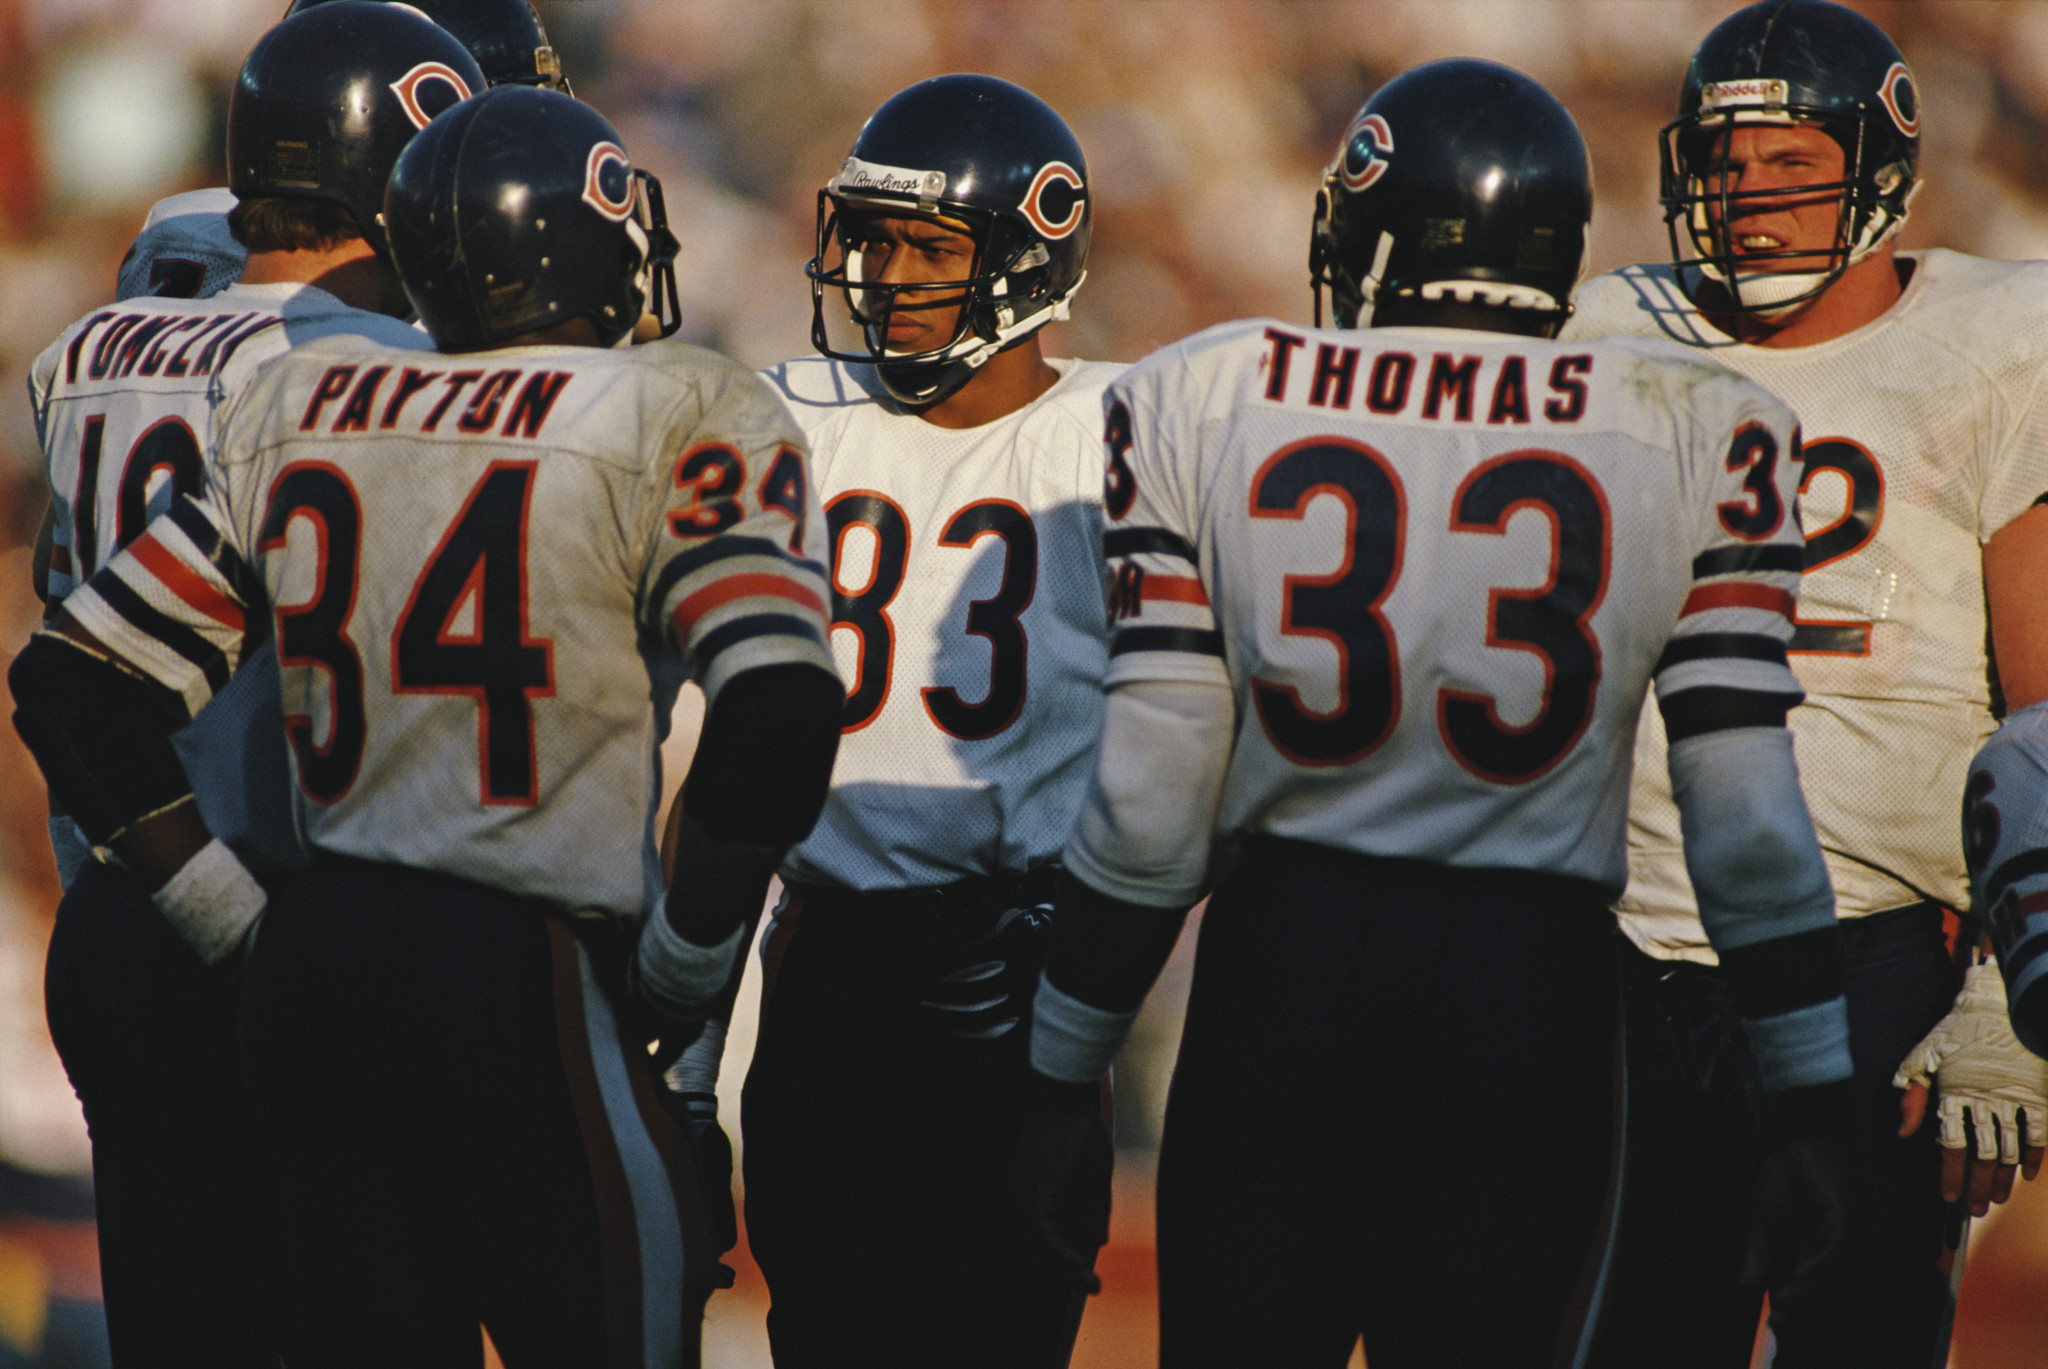 Willie Gault, pictured centre, was unable to compete at the 1980 Olympics because of the US boycott, but won world relay gold in 1983 and helped the Chicago Bears win the Super Bowl in 1985 ©Getty Images